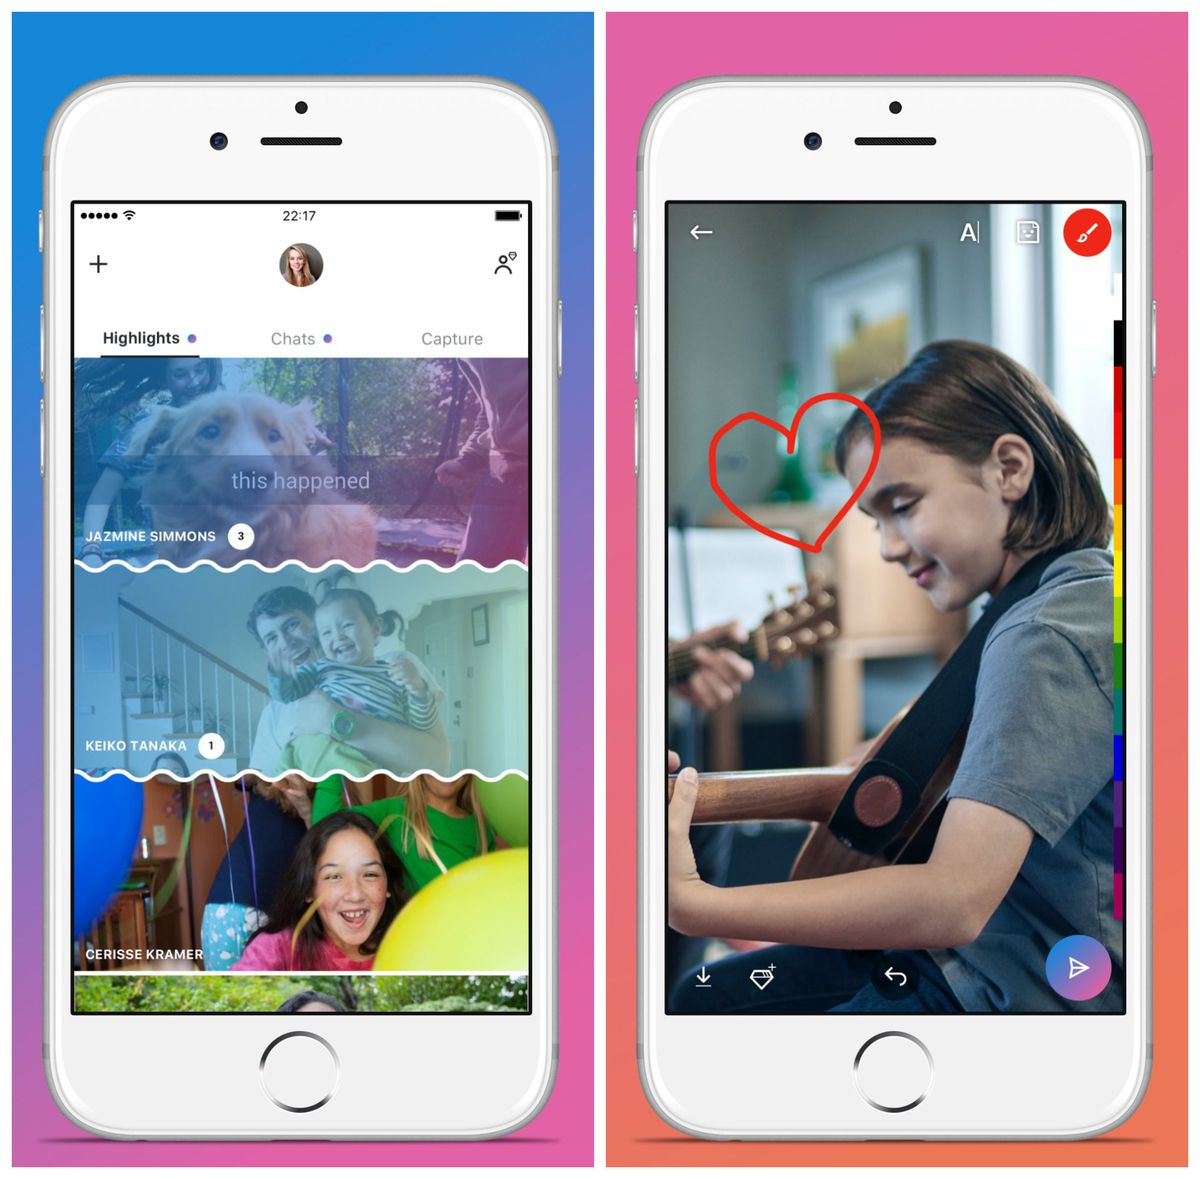 Skype's new Snapchat-like photo sharing features.